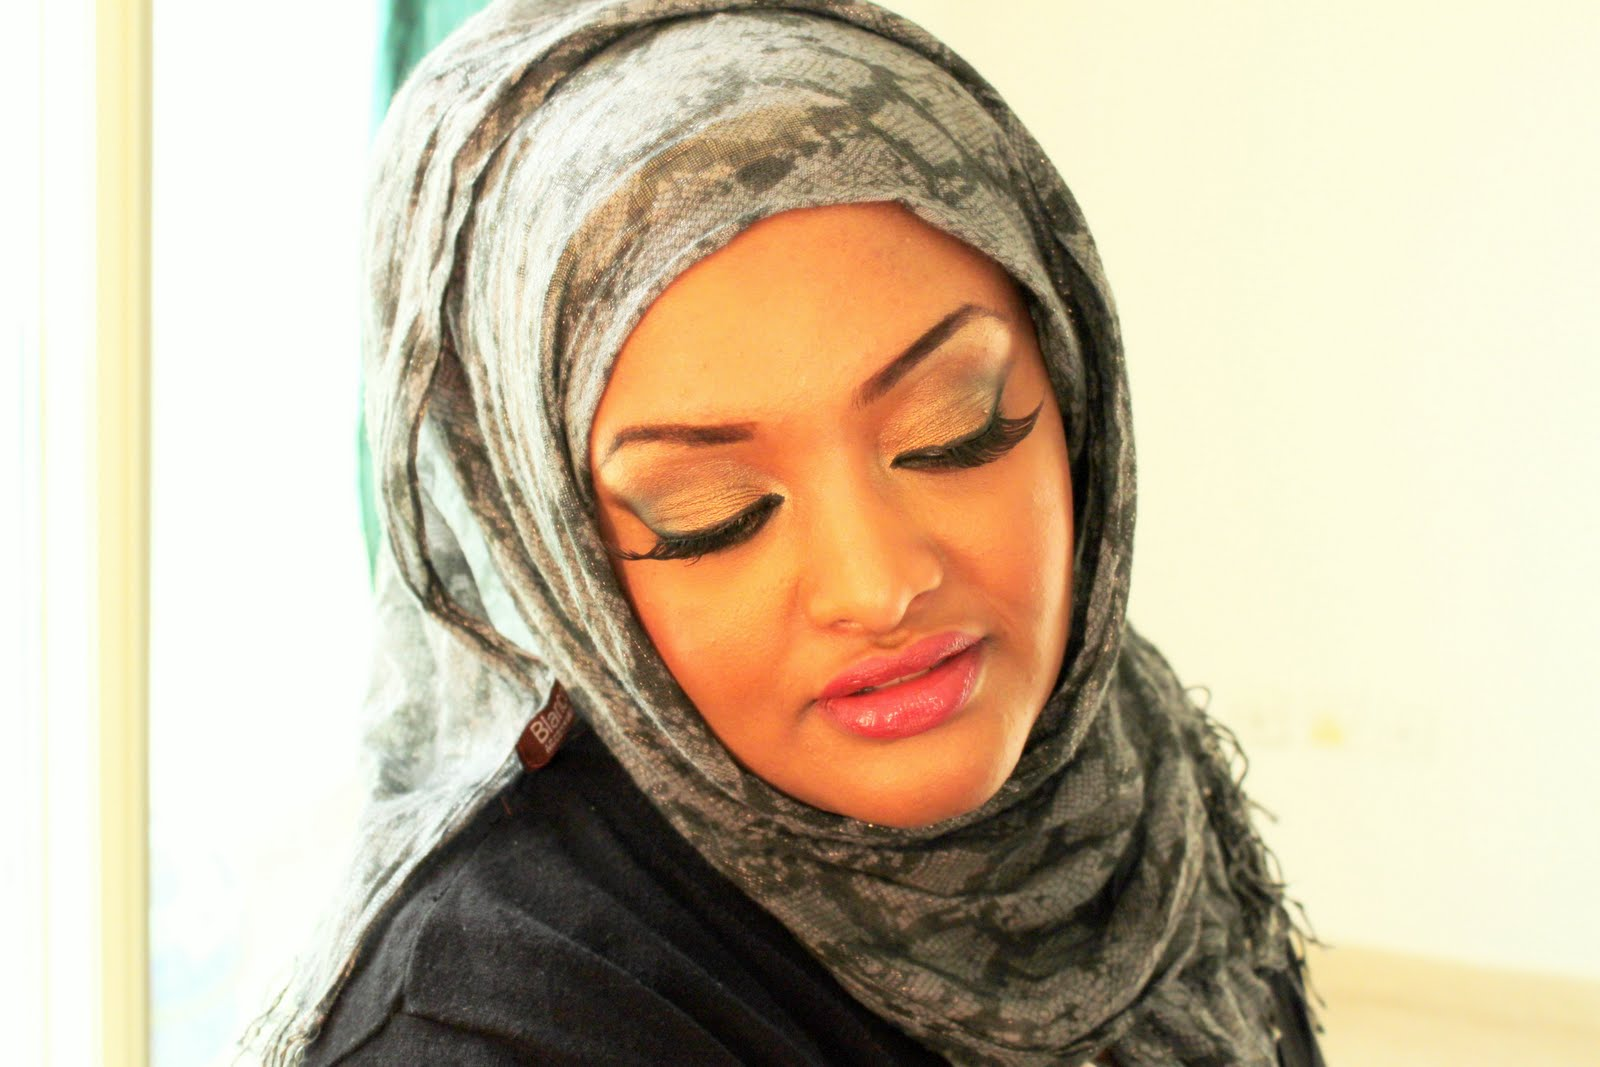 Golden Bridal Arabic Makeup